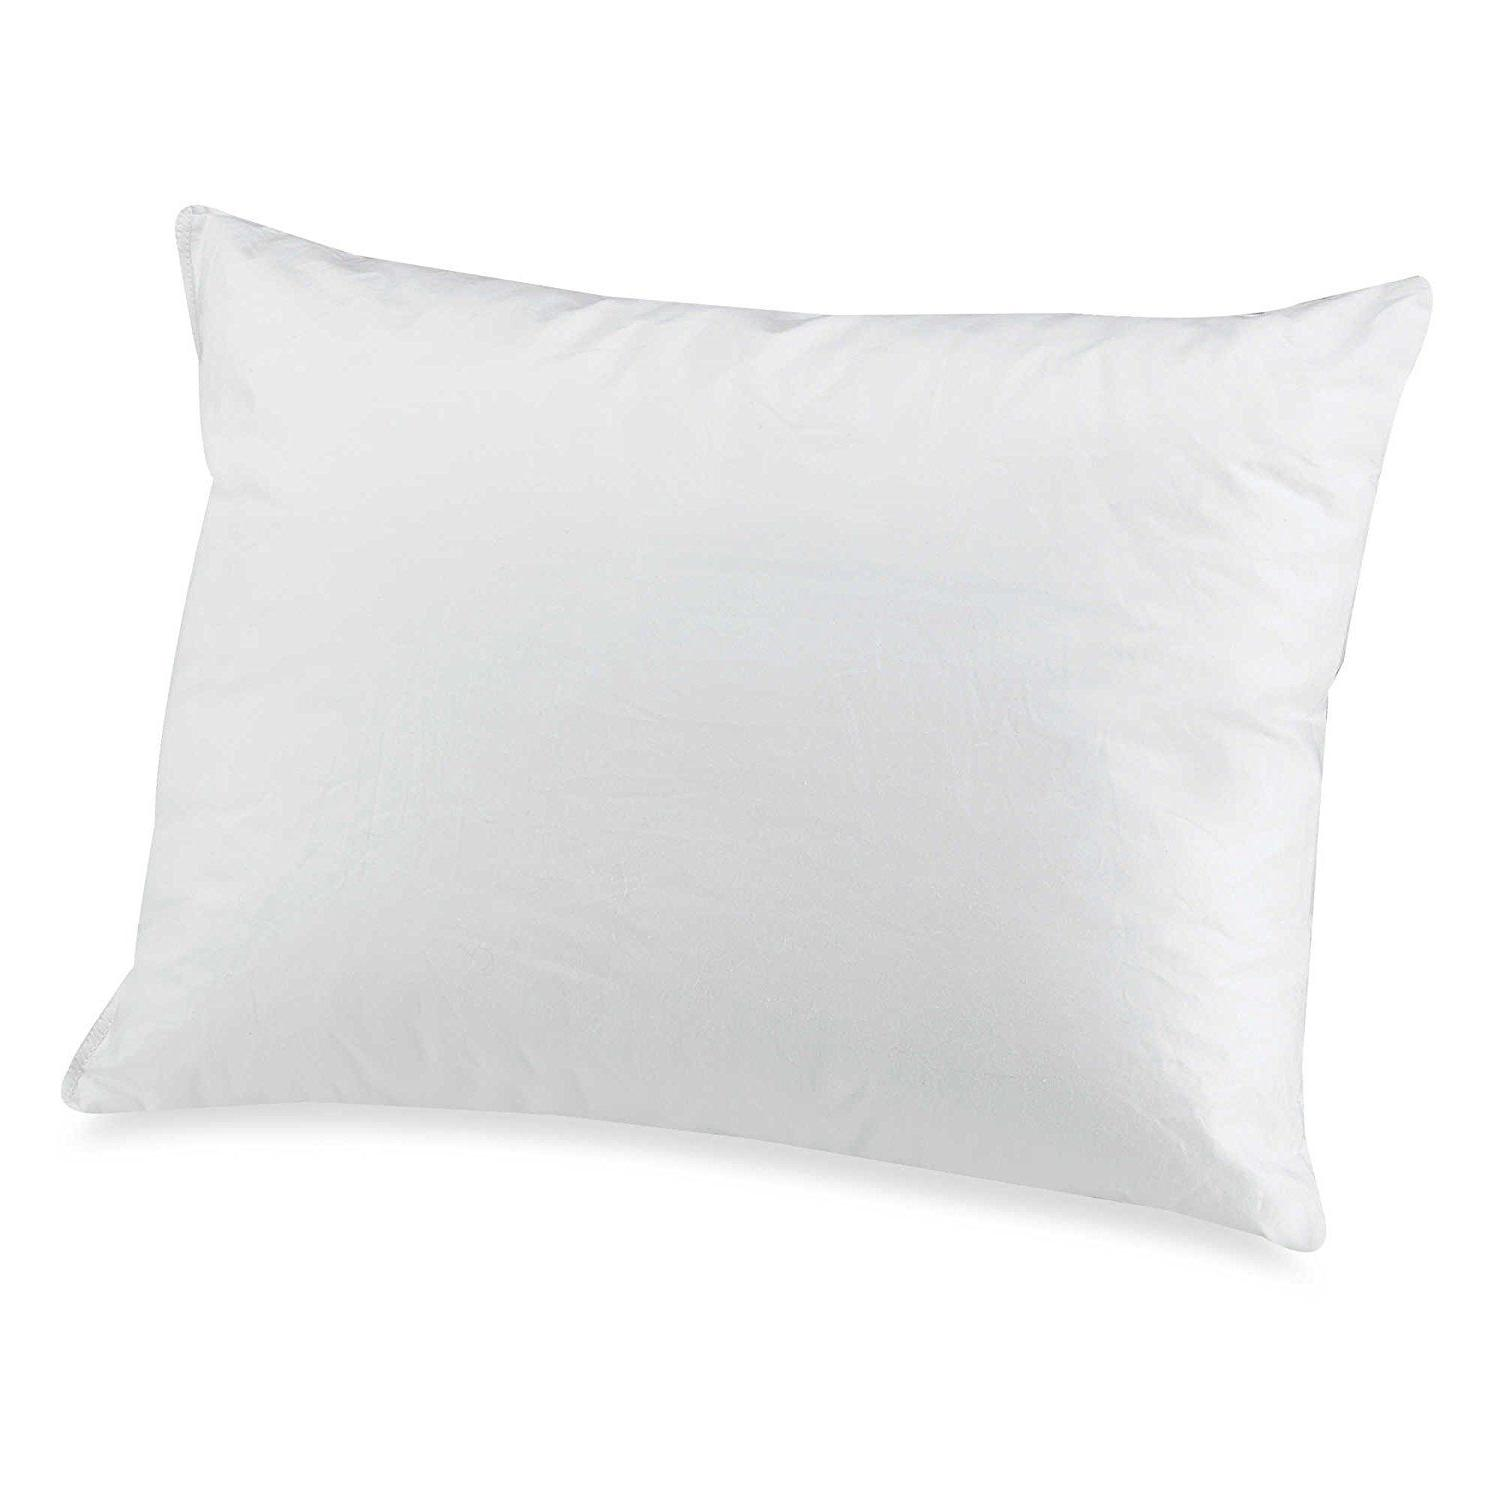 New Bedding Essentials Travel Pillow Protector Zipped 300 Th